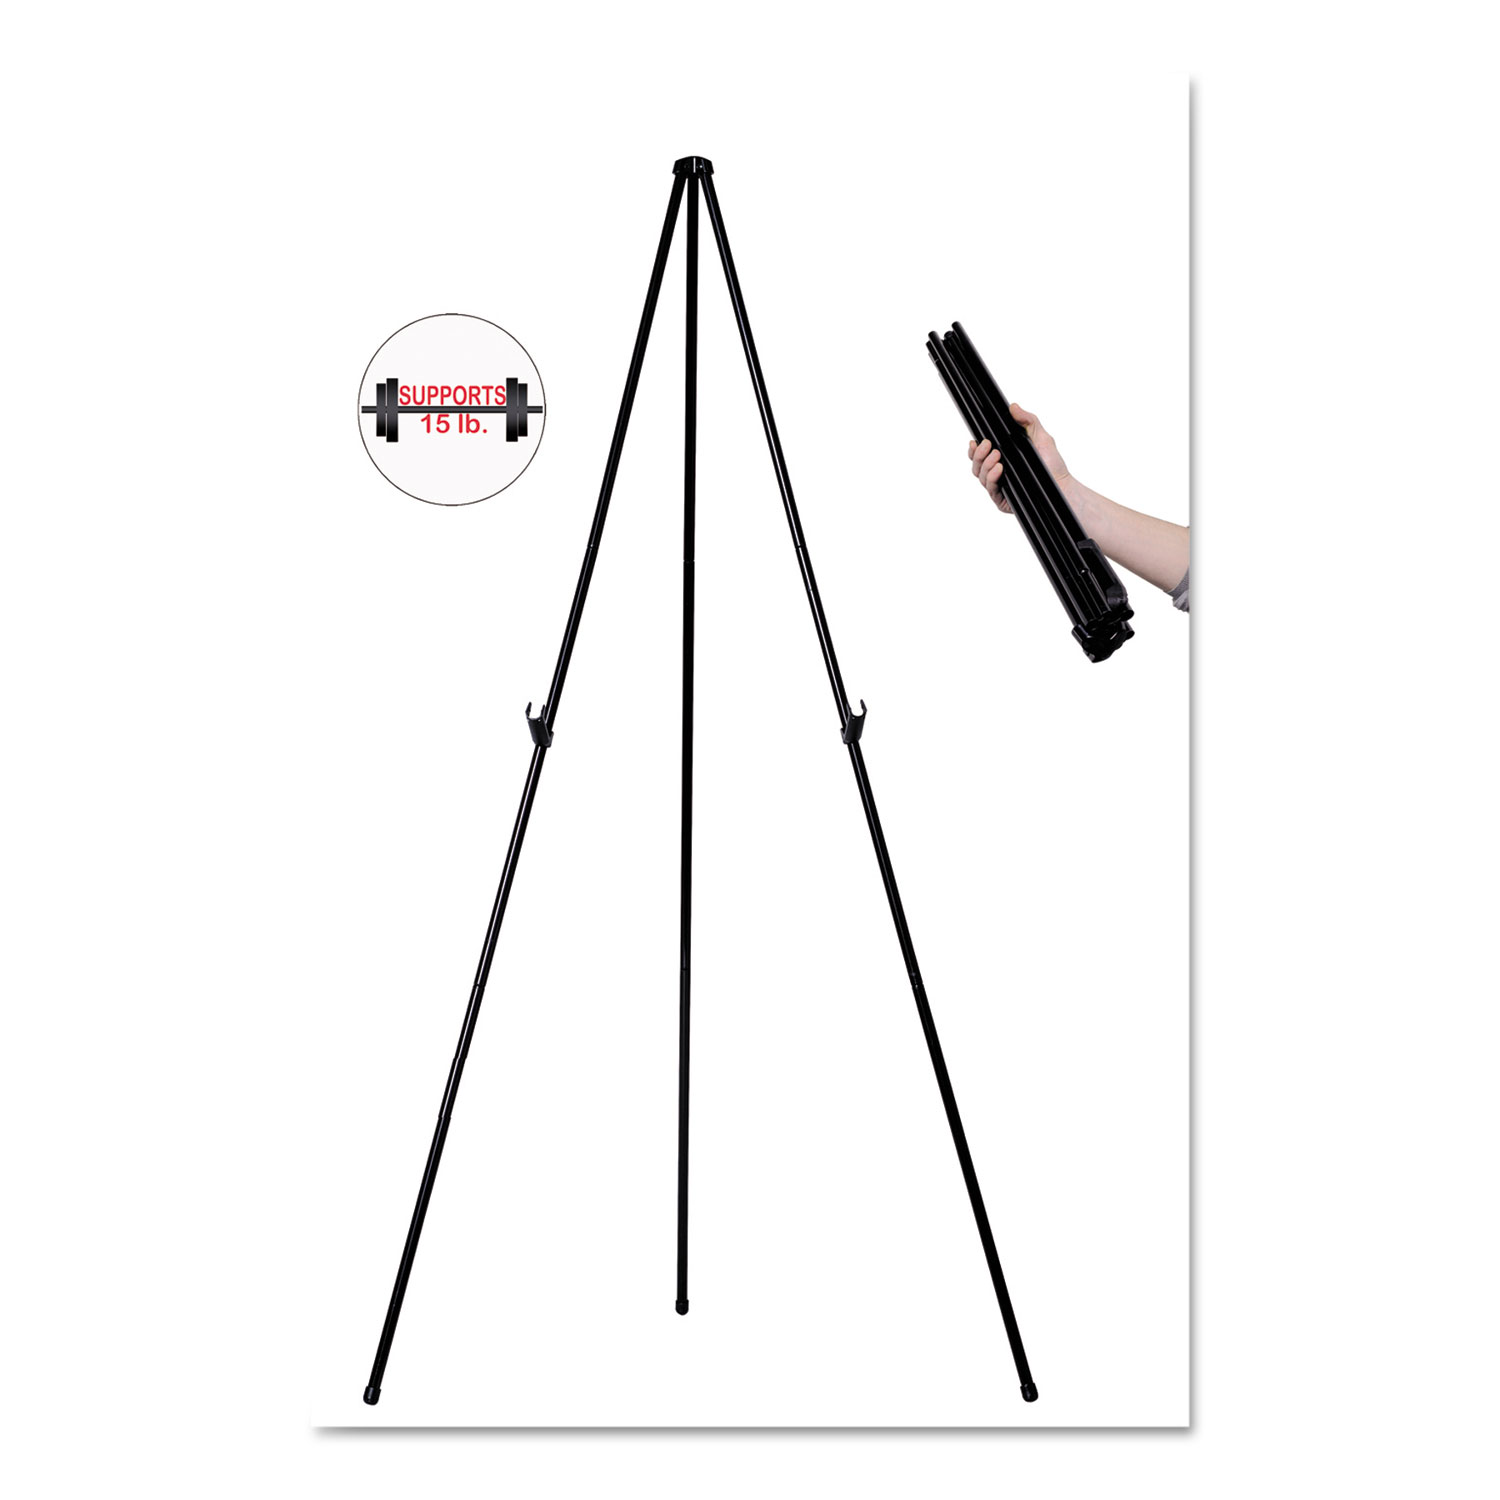 "Instant Easel, 61 1/2"", Black, Steel, Heavy-Duty"